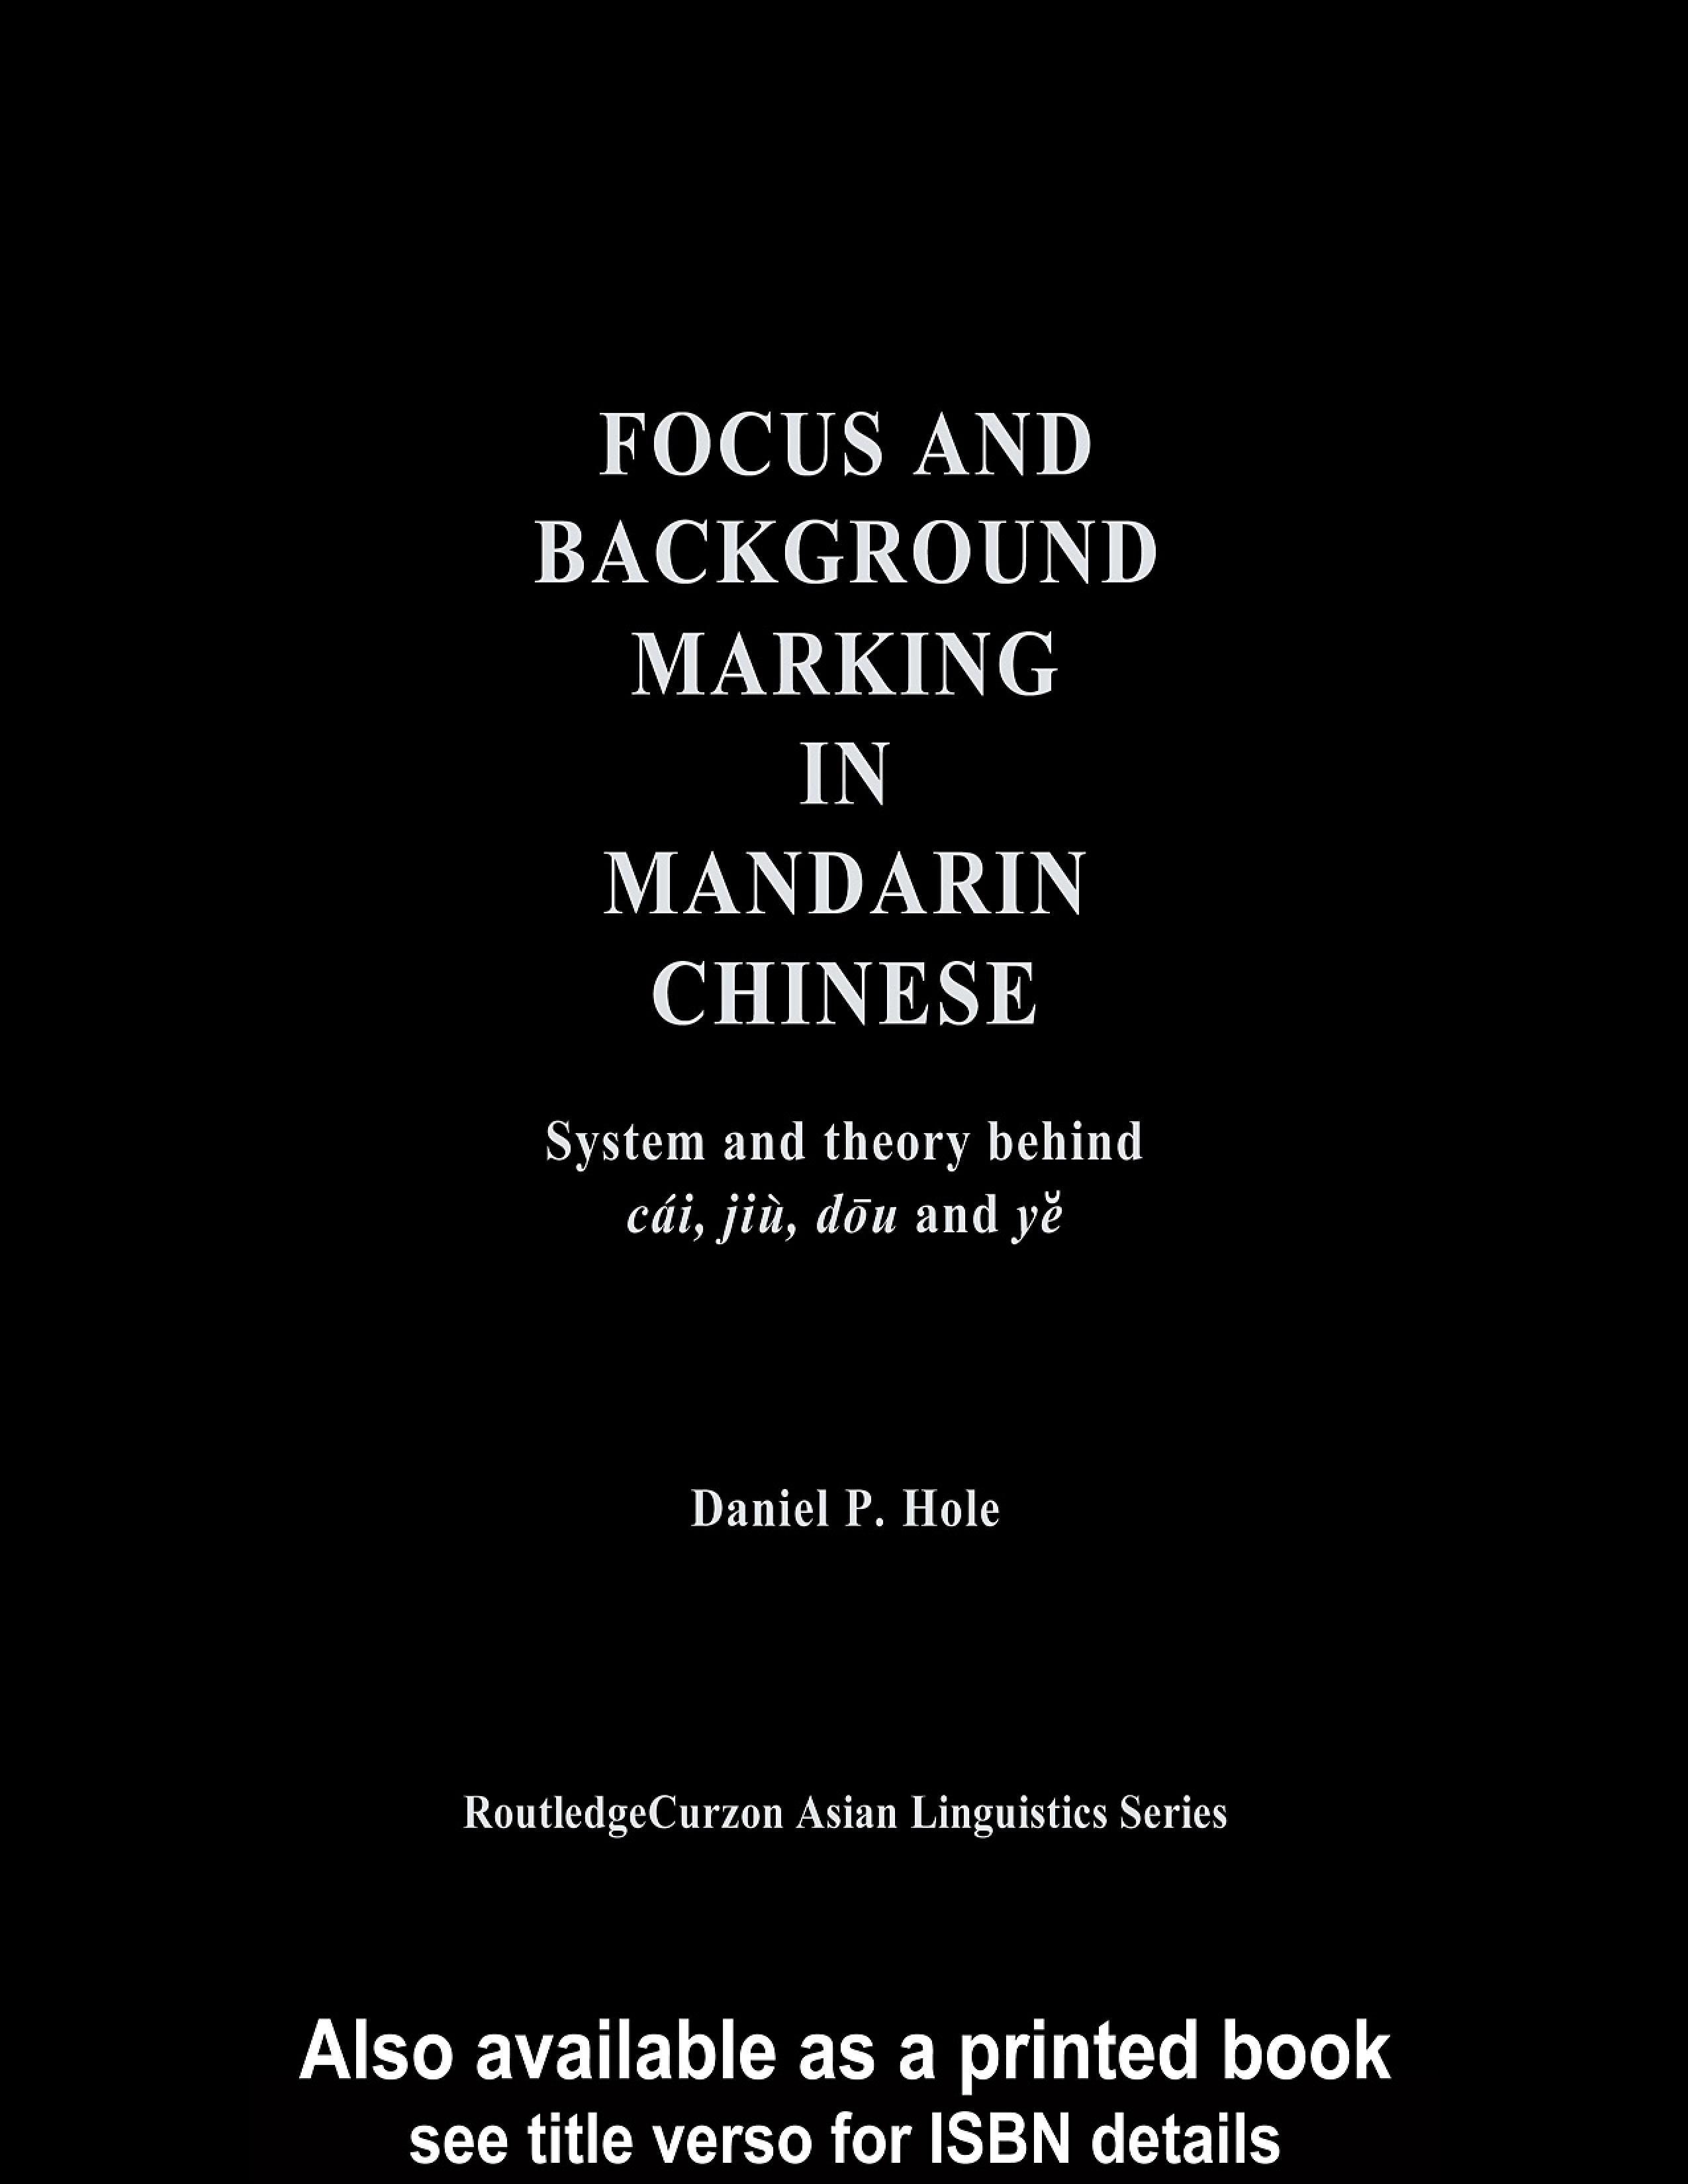 Focus and Background Marking in Mandarin Chinese: System and Theory behind cai, jiu, dou and ye EB9780203565193